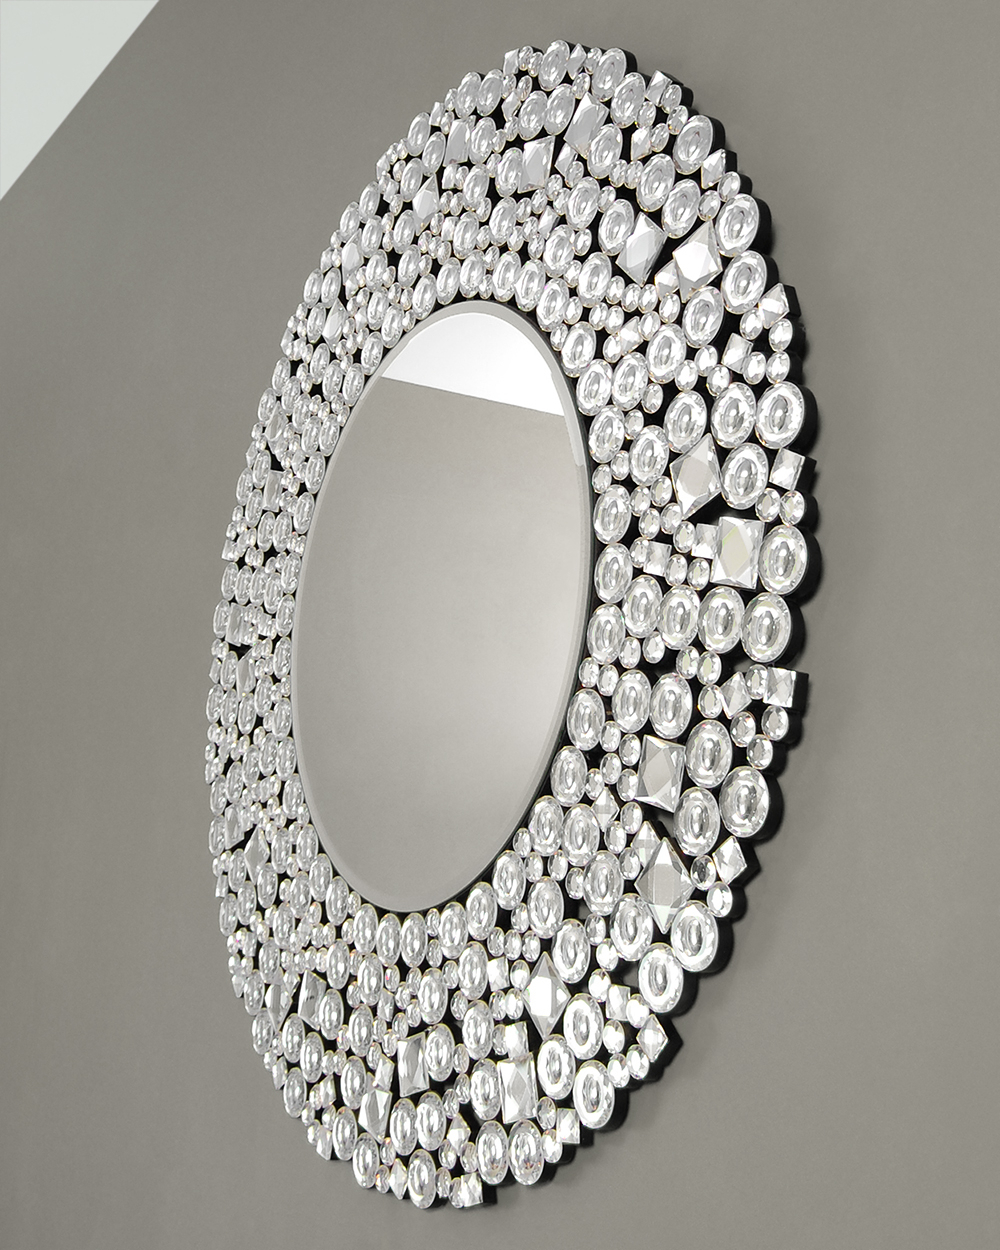 Well Known Round Wall Mirror With Crystals – Mirror Decorating Ideas In Wall Mirrors With Crystals (View 5 of 20)